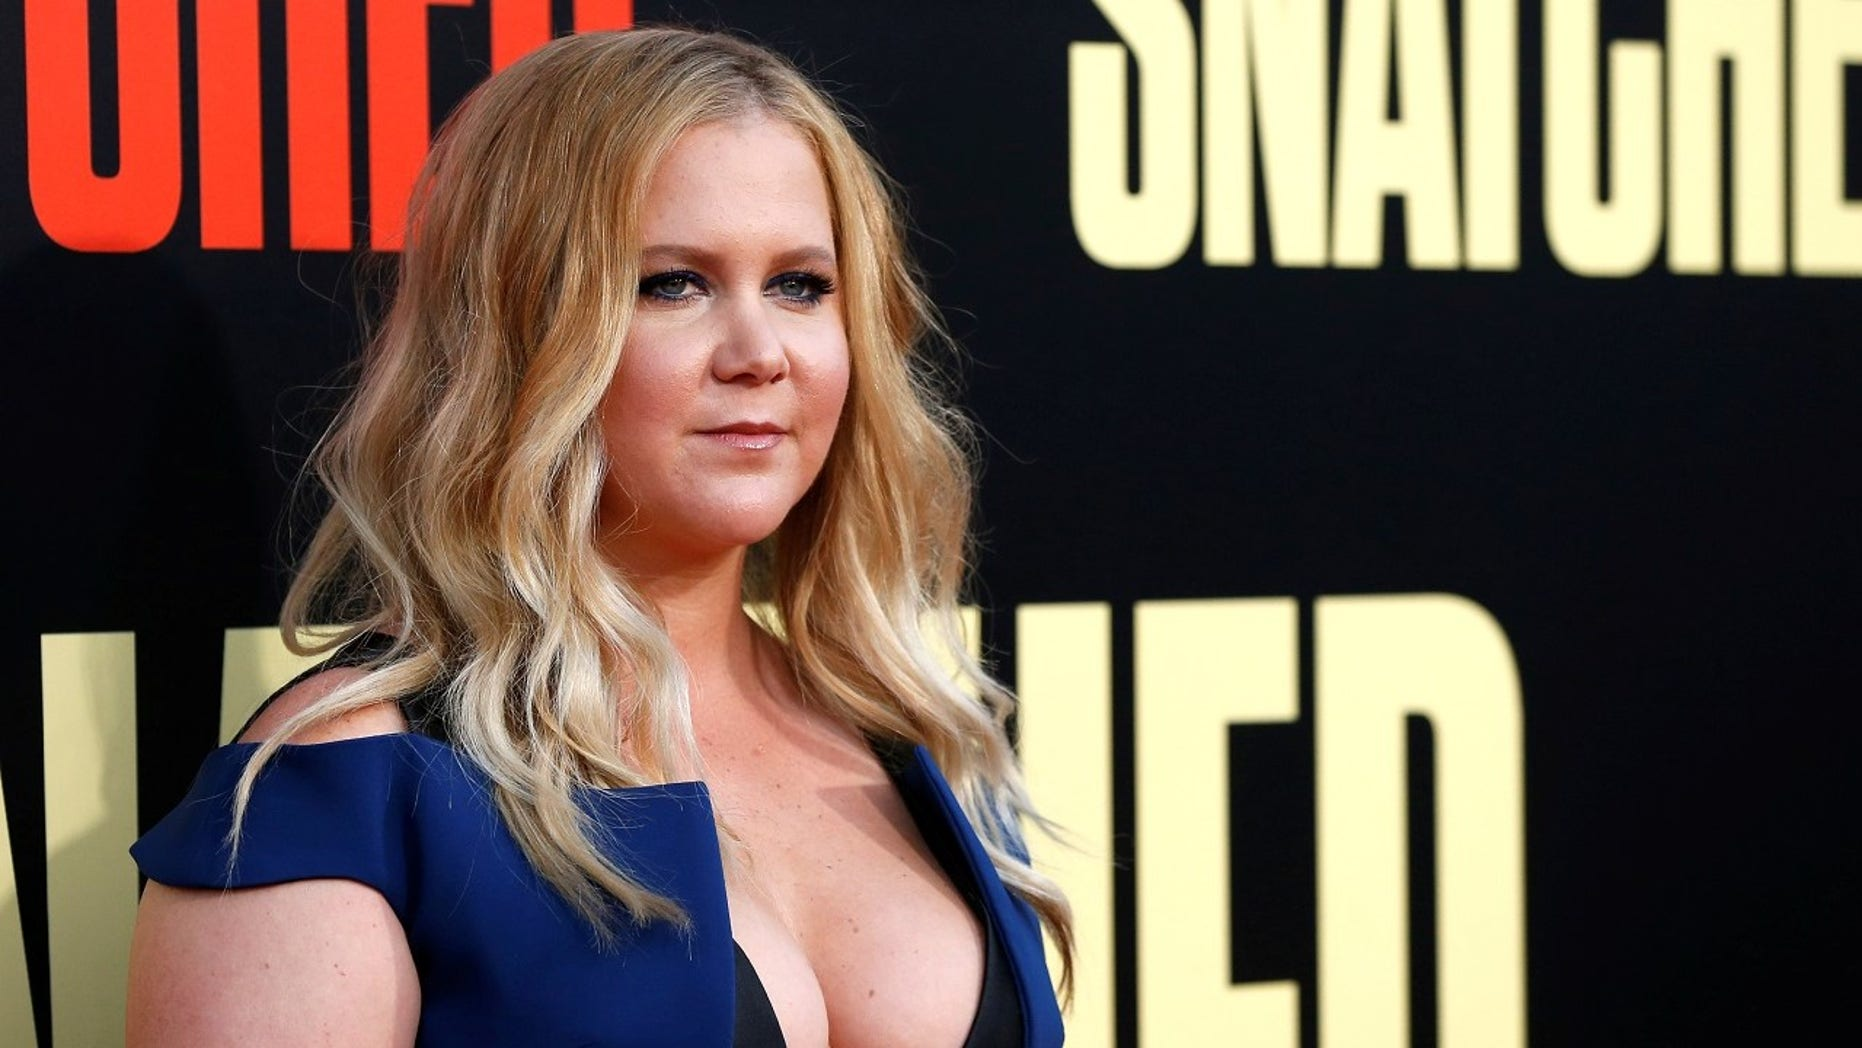 Pregnant comedian Amy Schumer announced Thursday that she is canceling her comedy debate after alighting in a hospital.